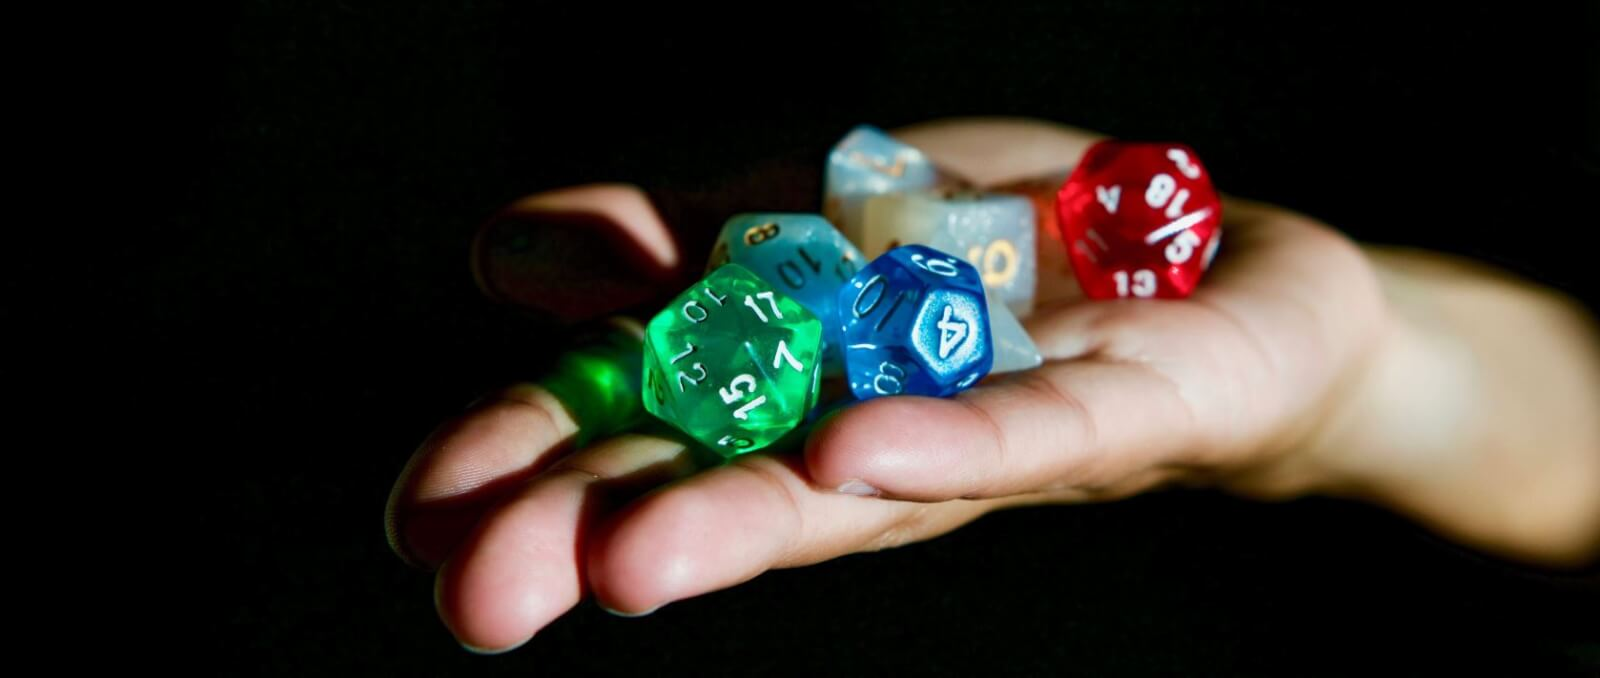 Open hand with multi-colored dice.